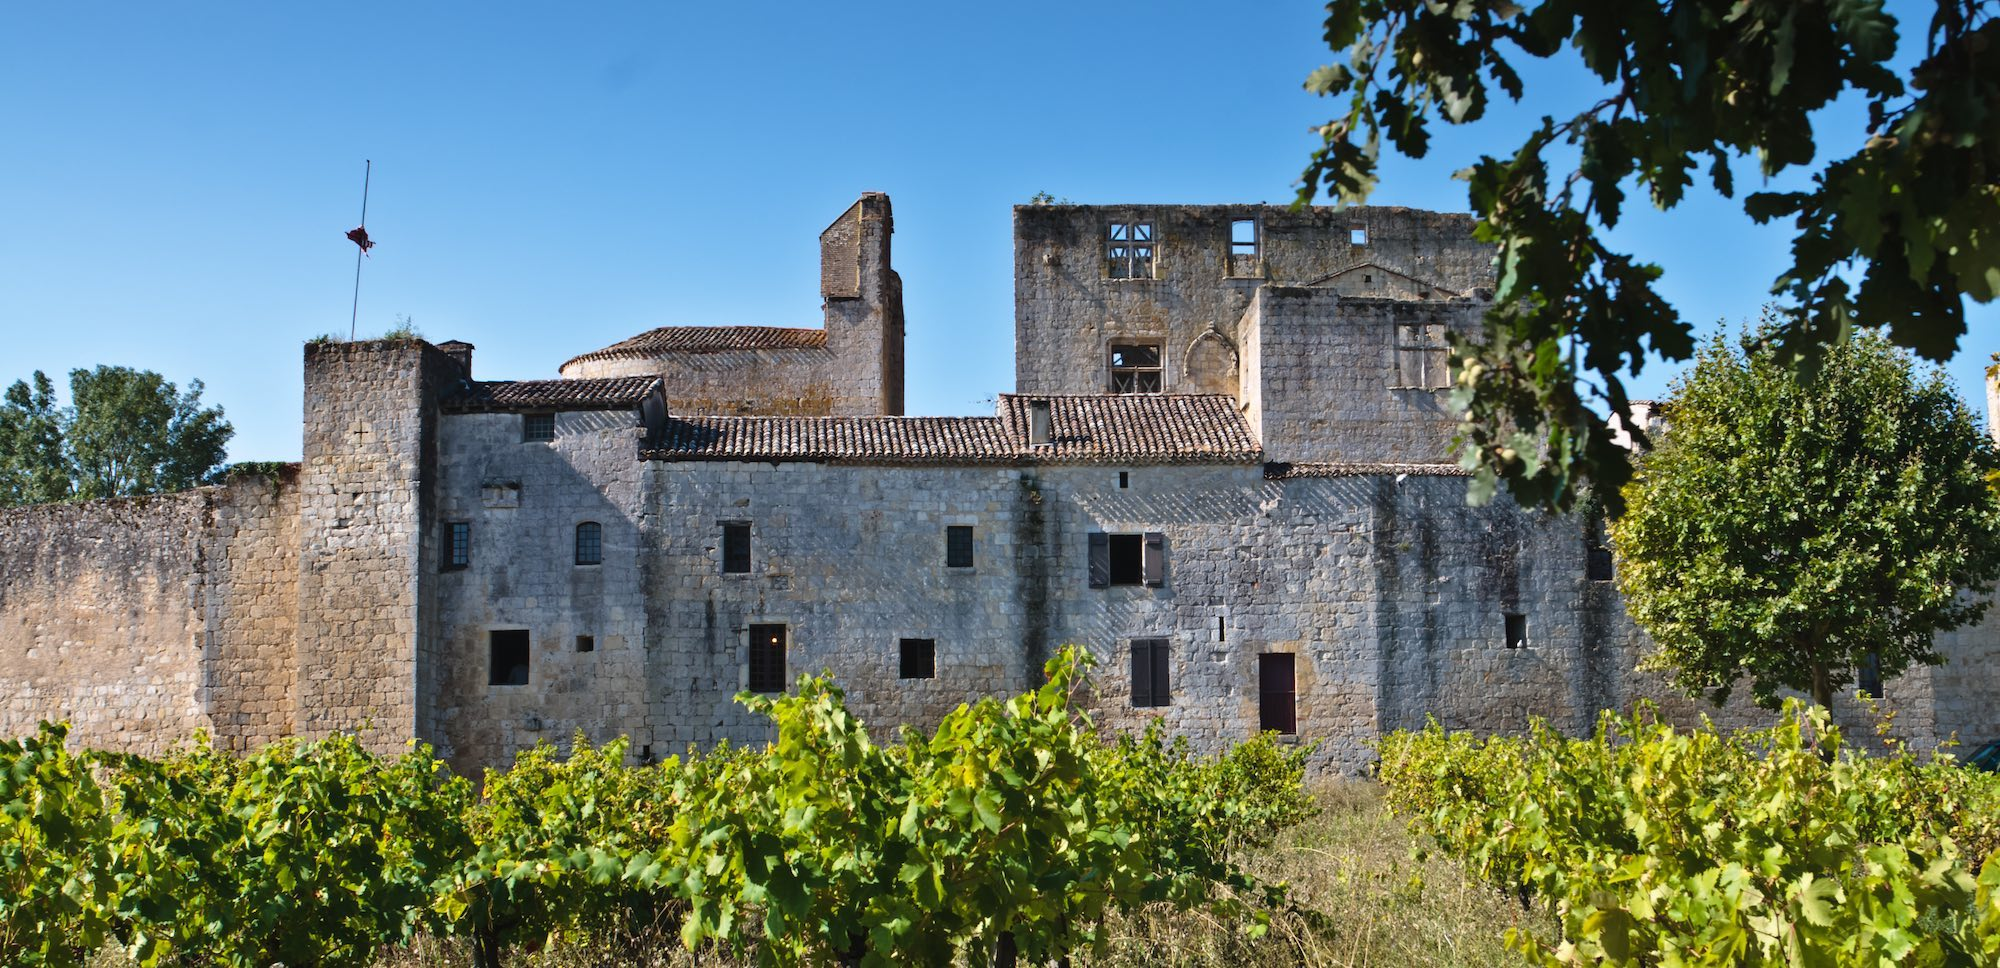 chateau laressingle jeune confort luxe 2000x960 1 - Château de Guirauton - version avant avril 2019